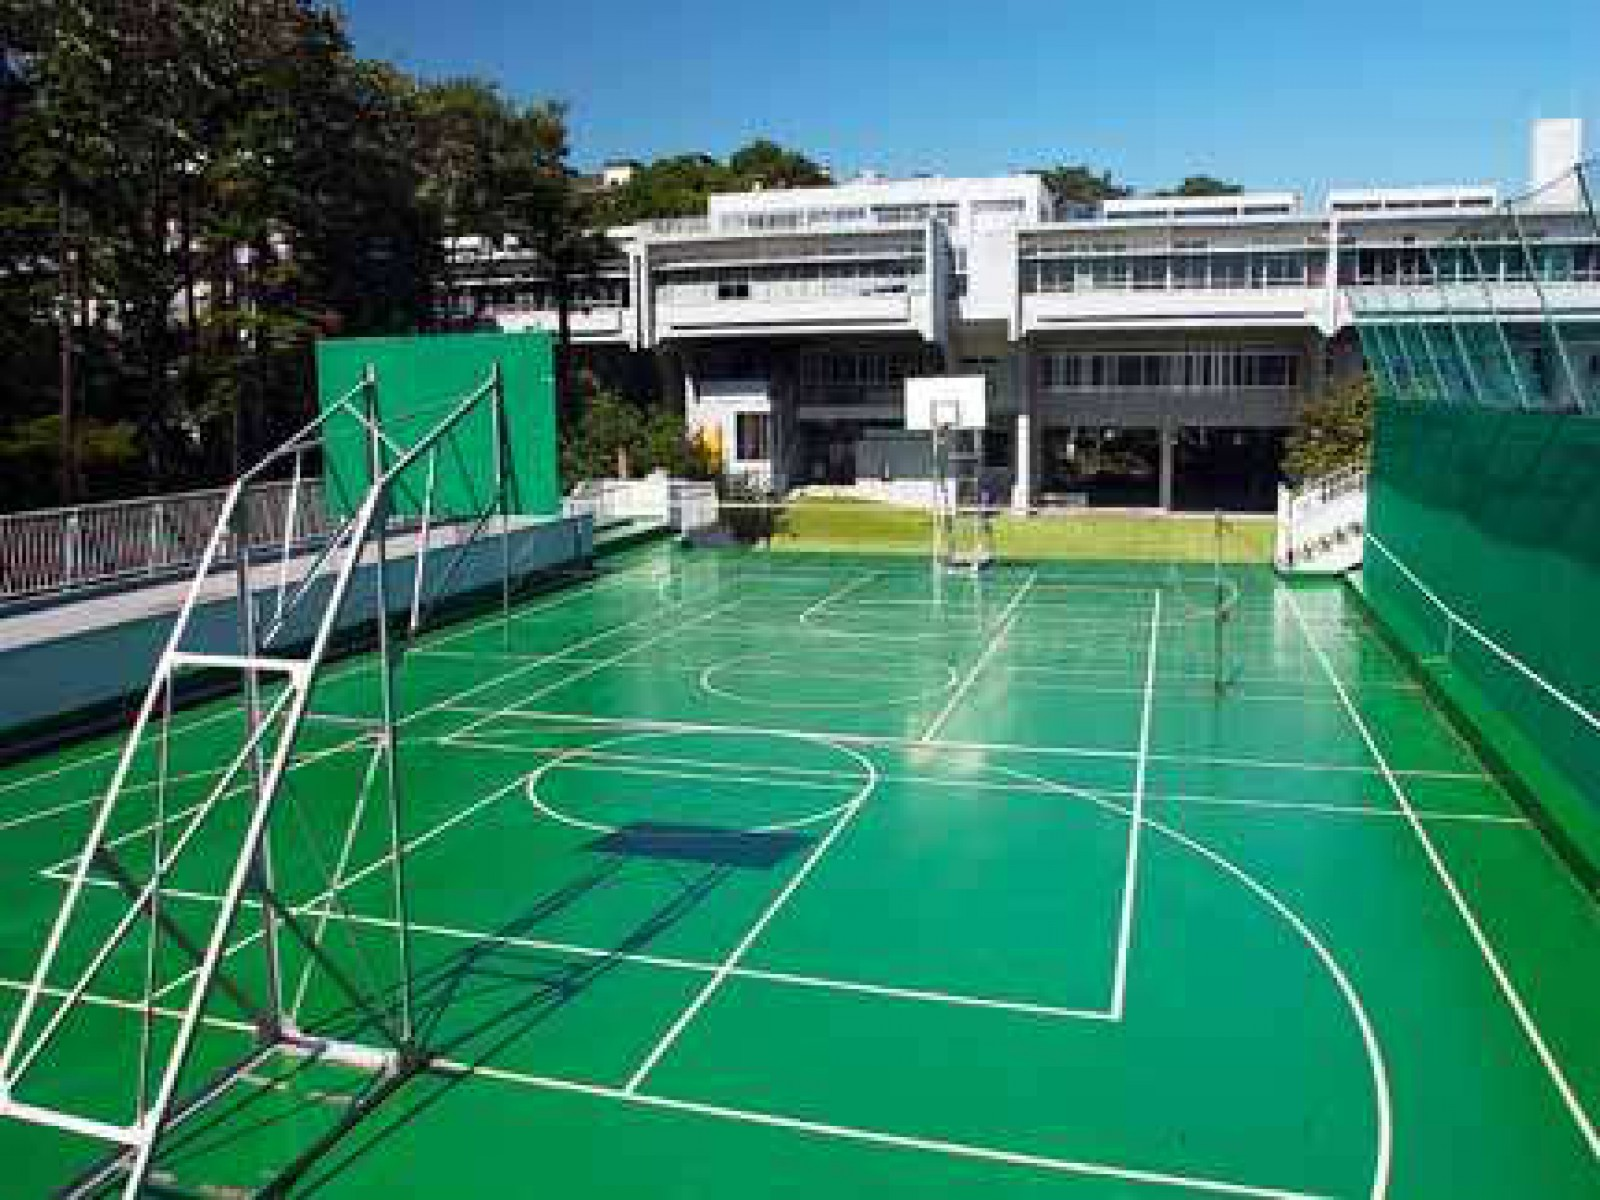 International School of the Sacred Heart, Tokyo, Japan